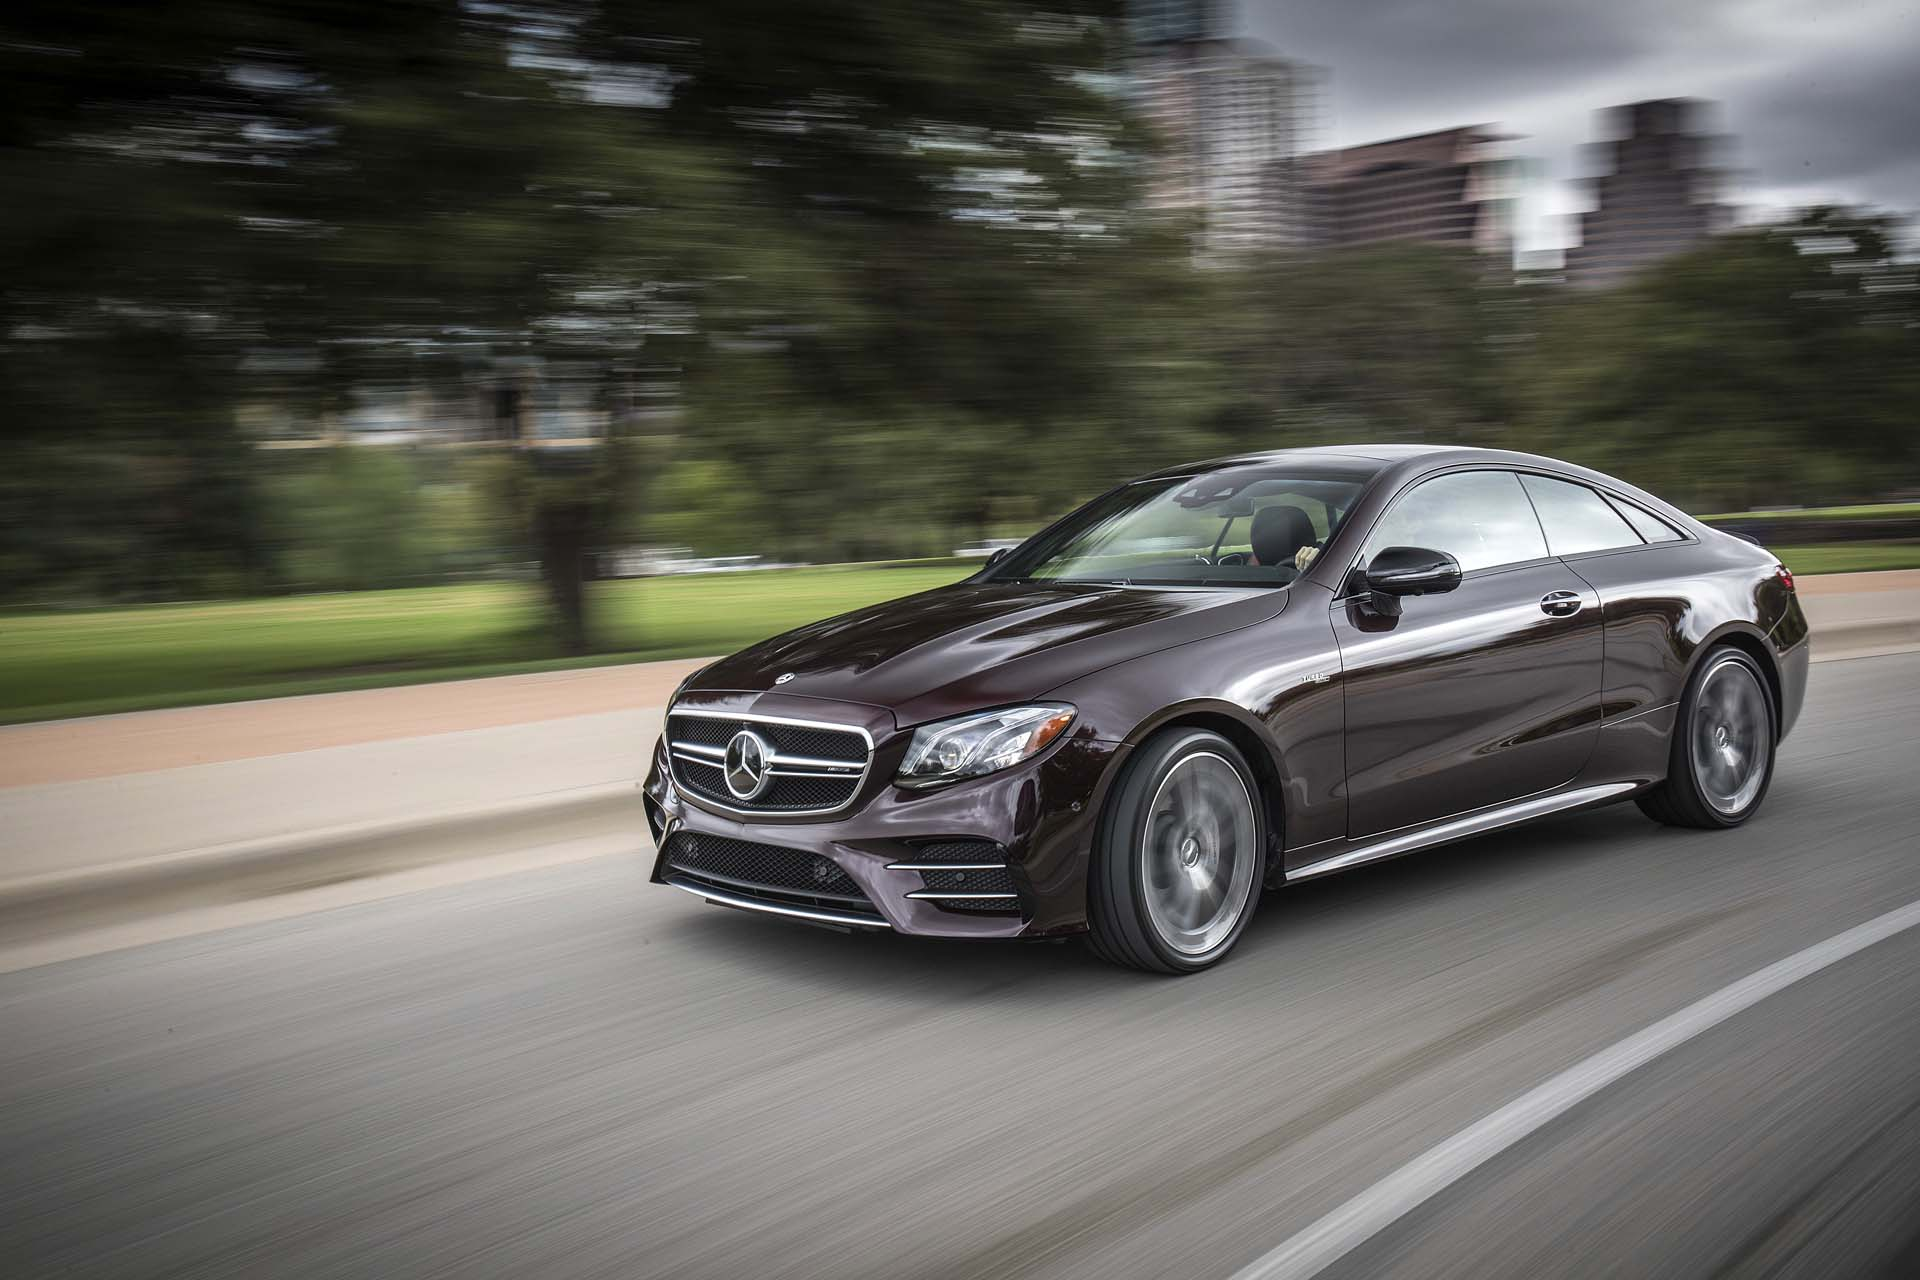 2019 Mercedes-Benz E Class Review, Ratings, Specs, Prices